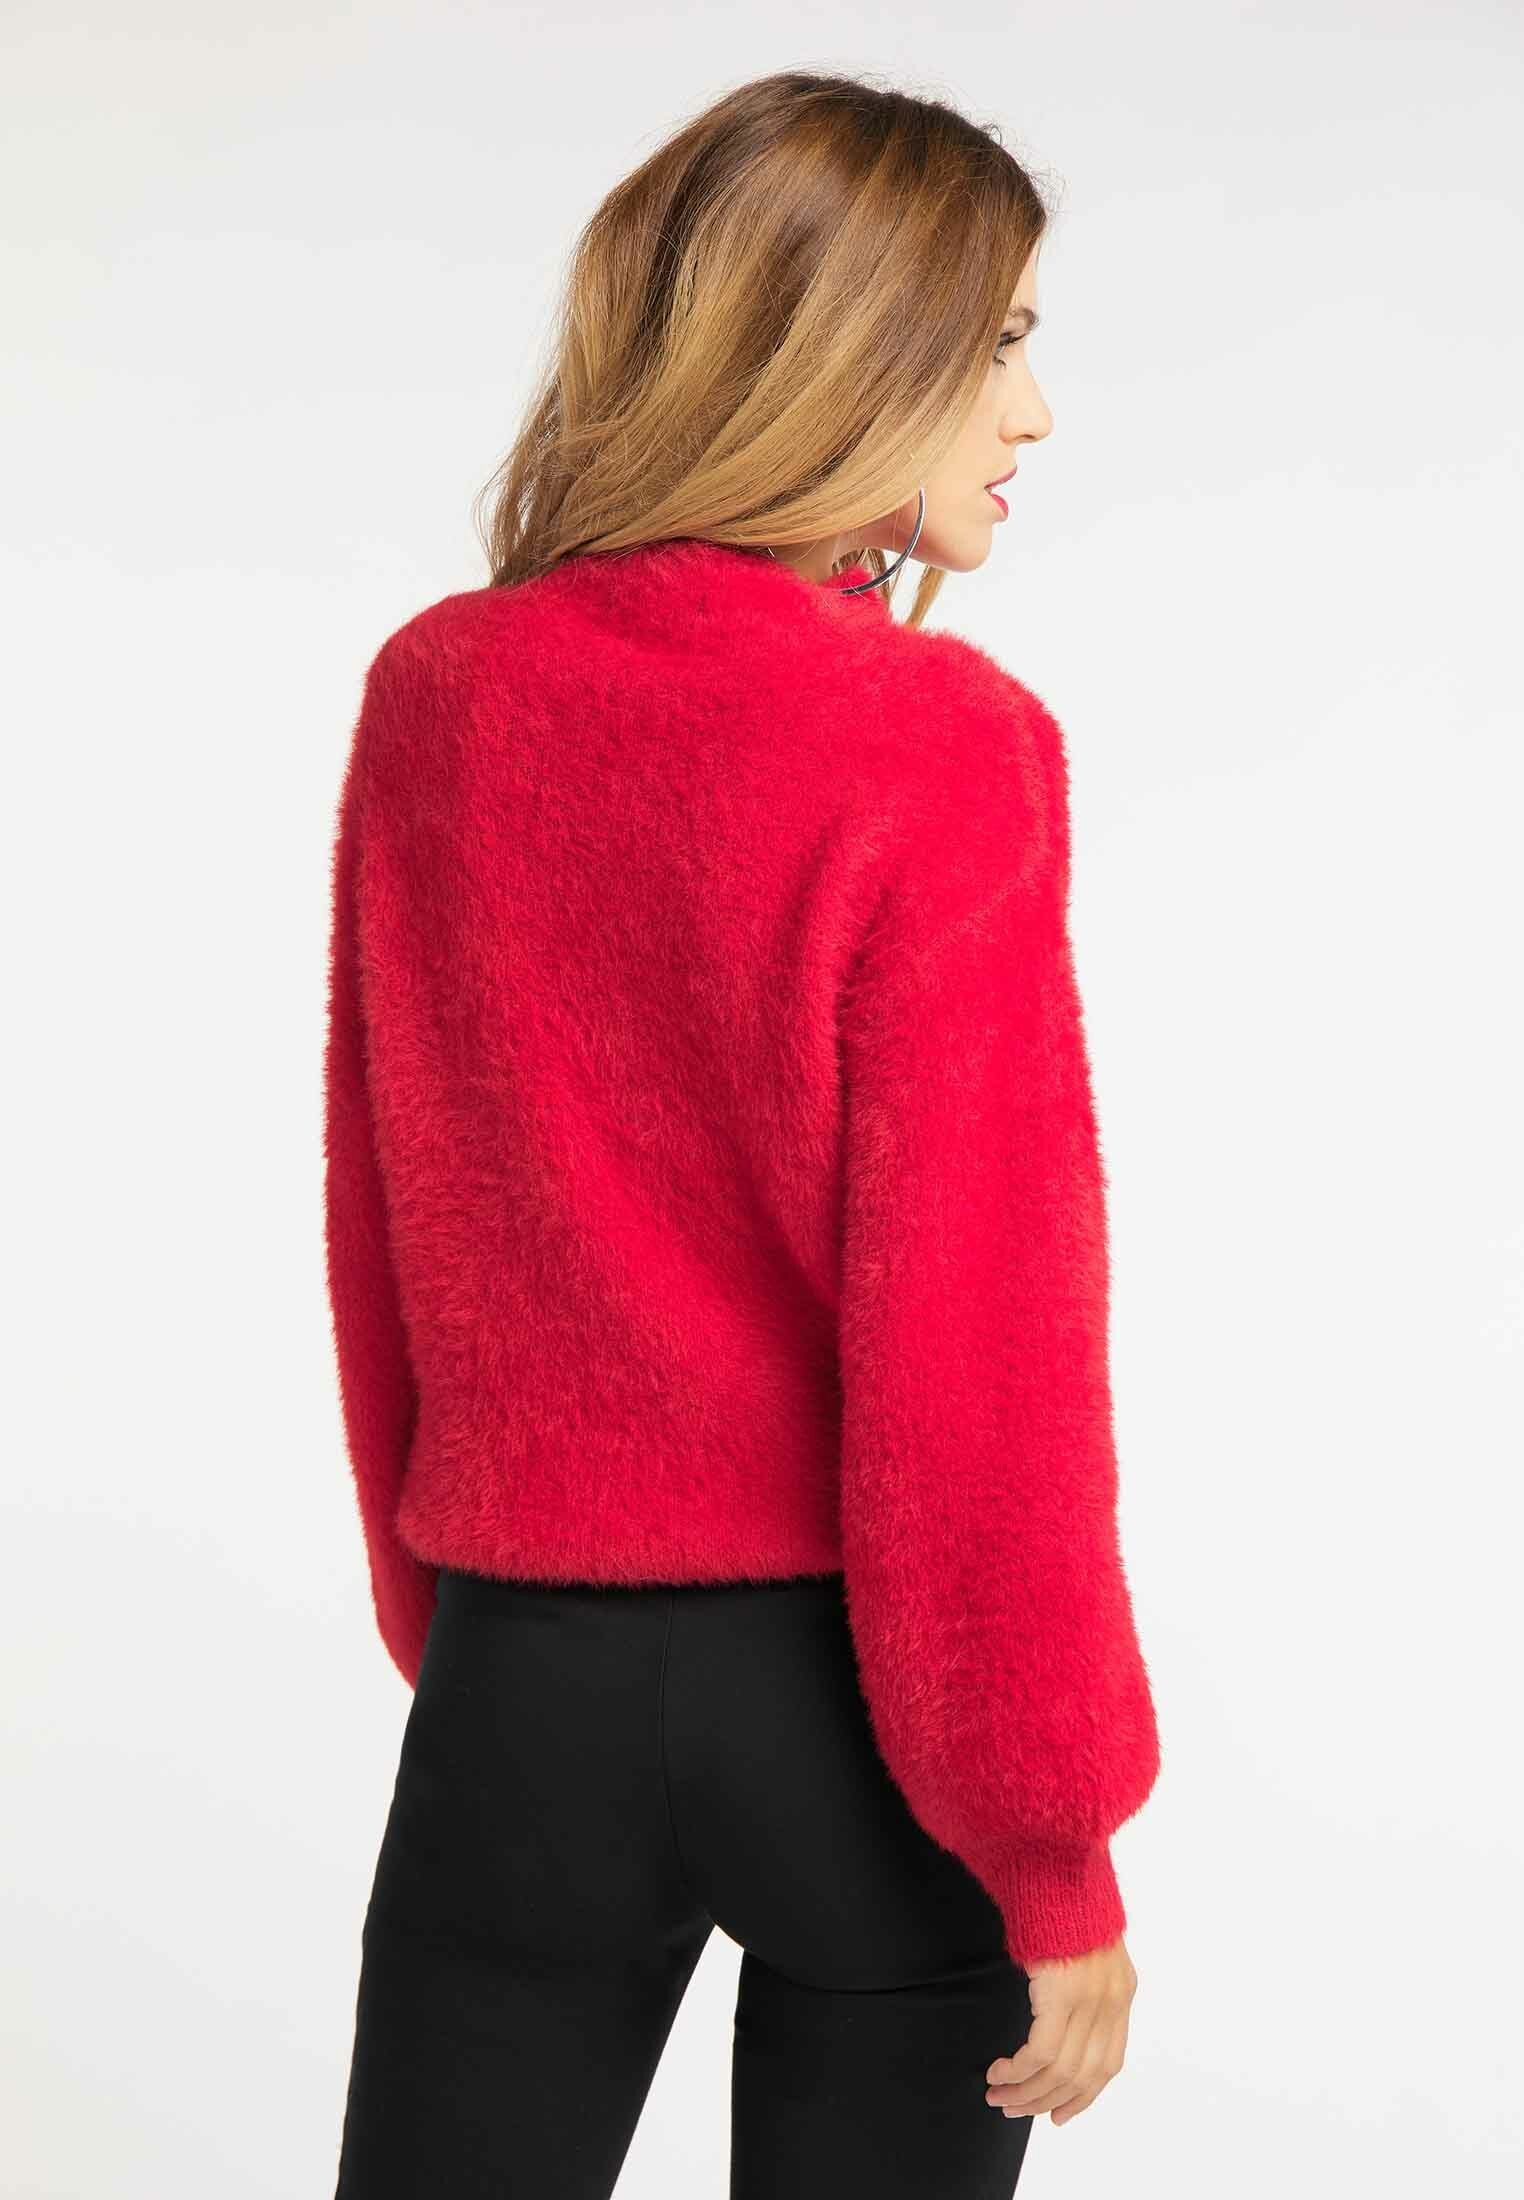 New Lower Prices Women's Clothing faina Jumper red P2bXKhNRQ